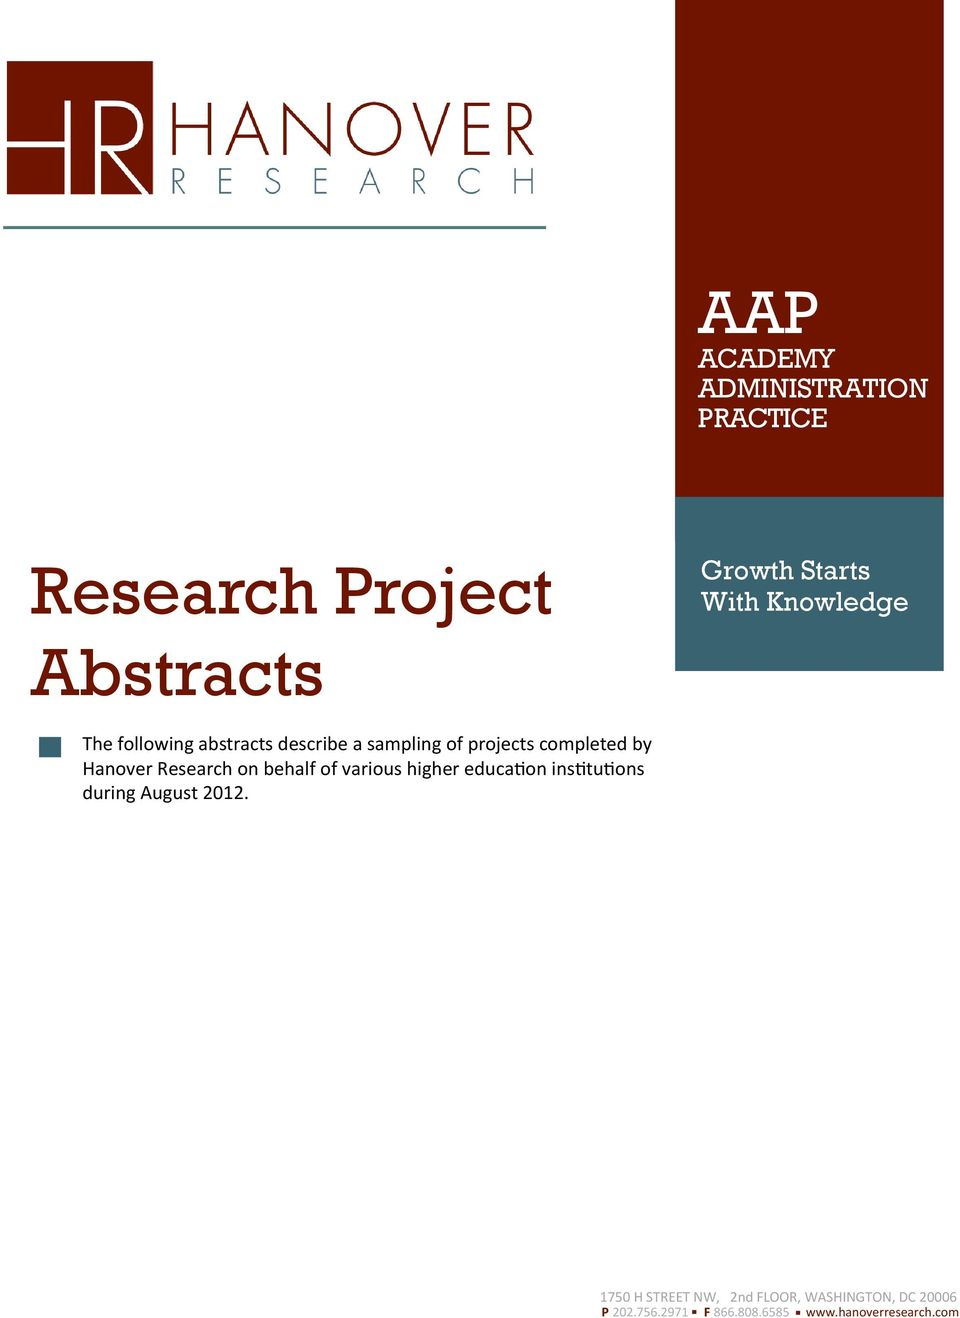 Research on behalf of various higher education institutions during August 2012.